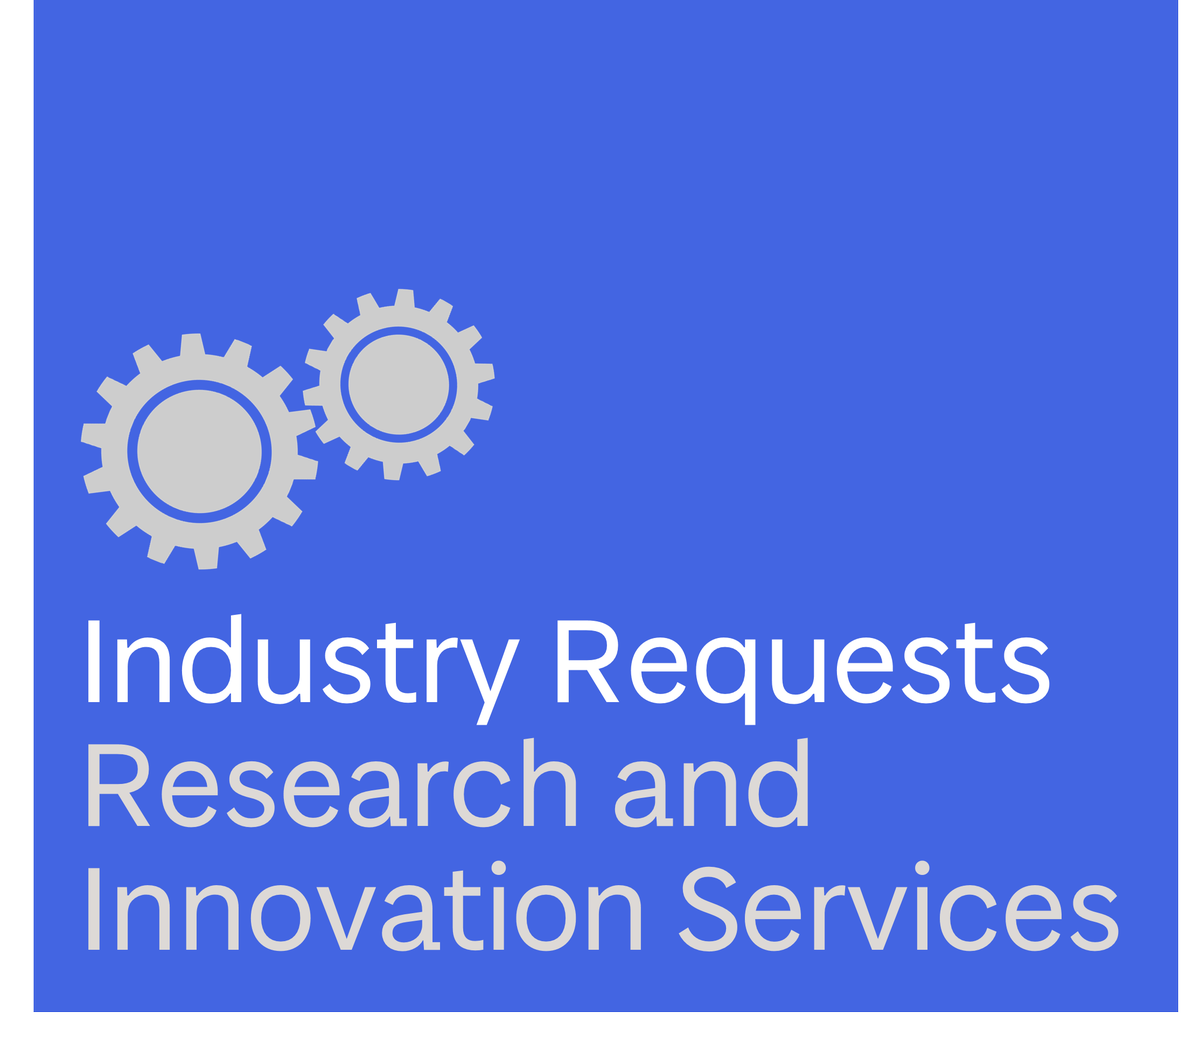 We&#39;ve updated our Live Industry Requests.  UoD researchers, take a look and get in touch!  http:// uod.ac.uk/2v2PNJR  &nbsp;   #mostinnovative <br>http://pic.twitter.com/mi89zlNToX